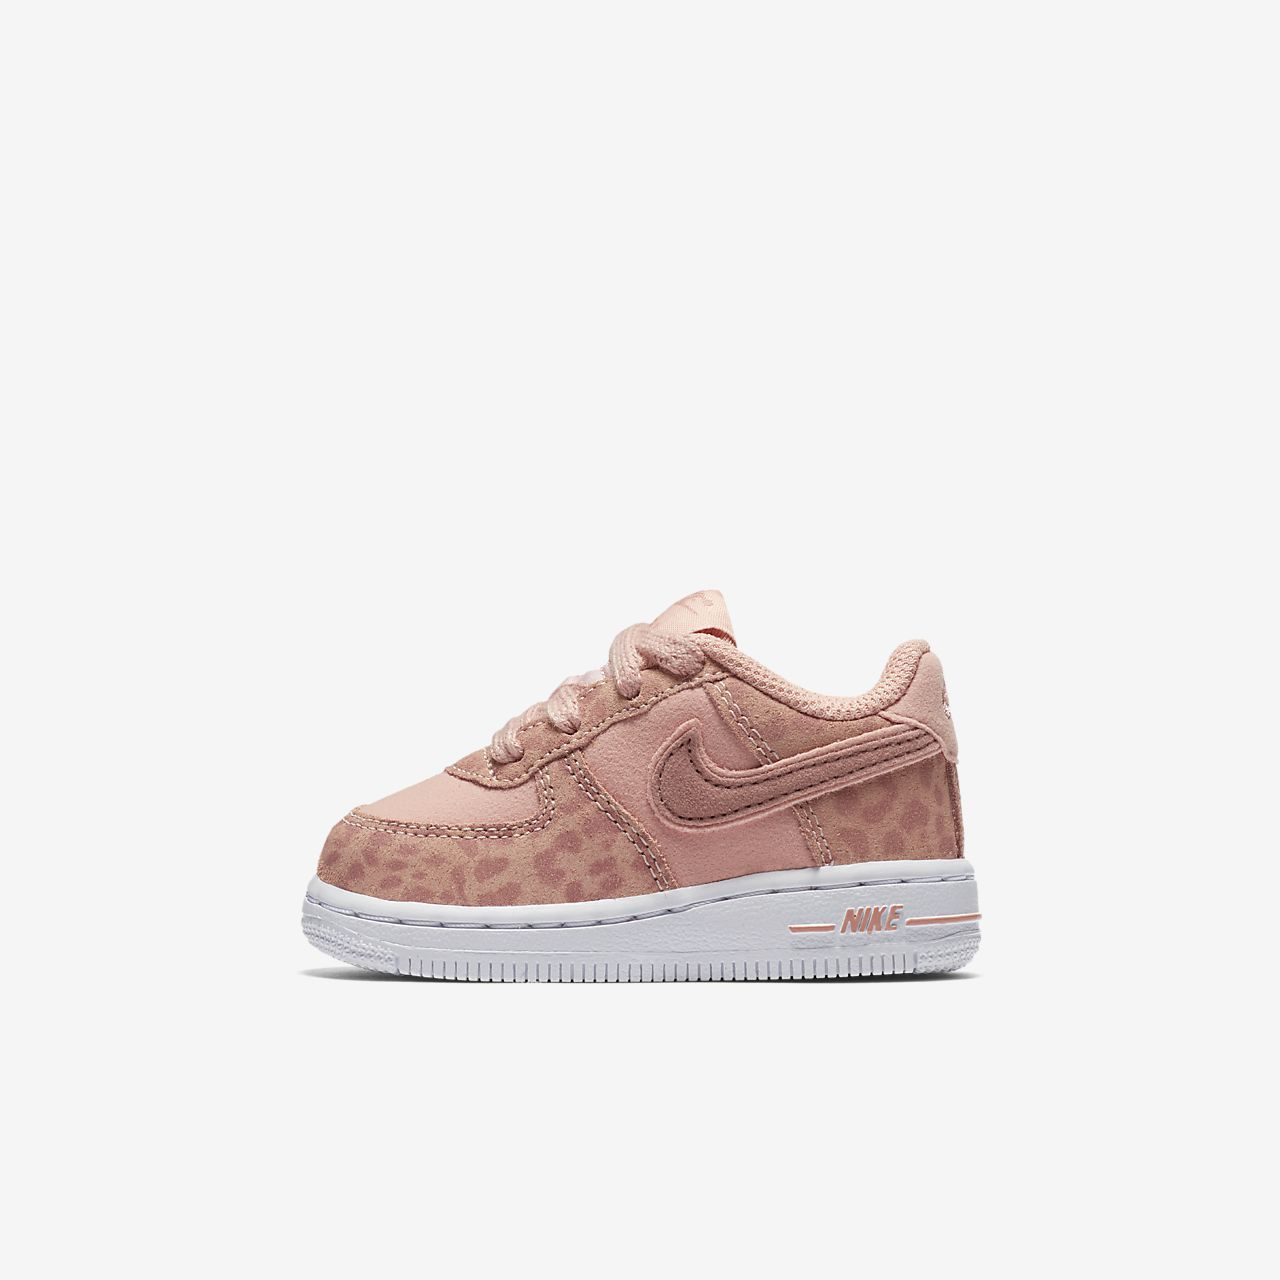 660e20dcfd6a83 Nike Air Force 1 LV8 Infant Toddler Shoe